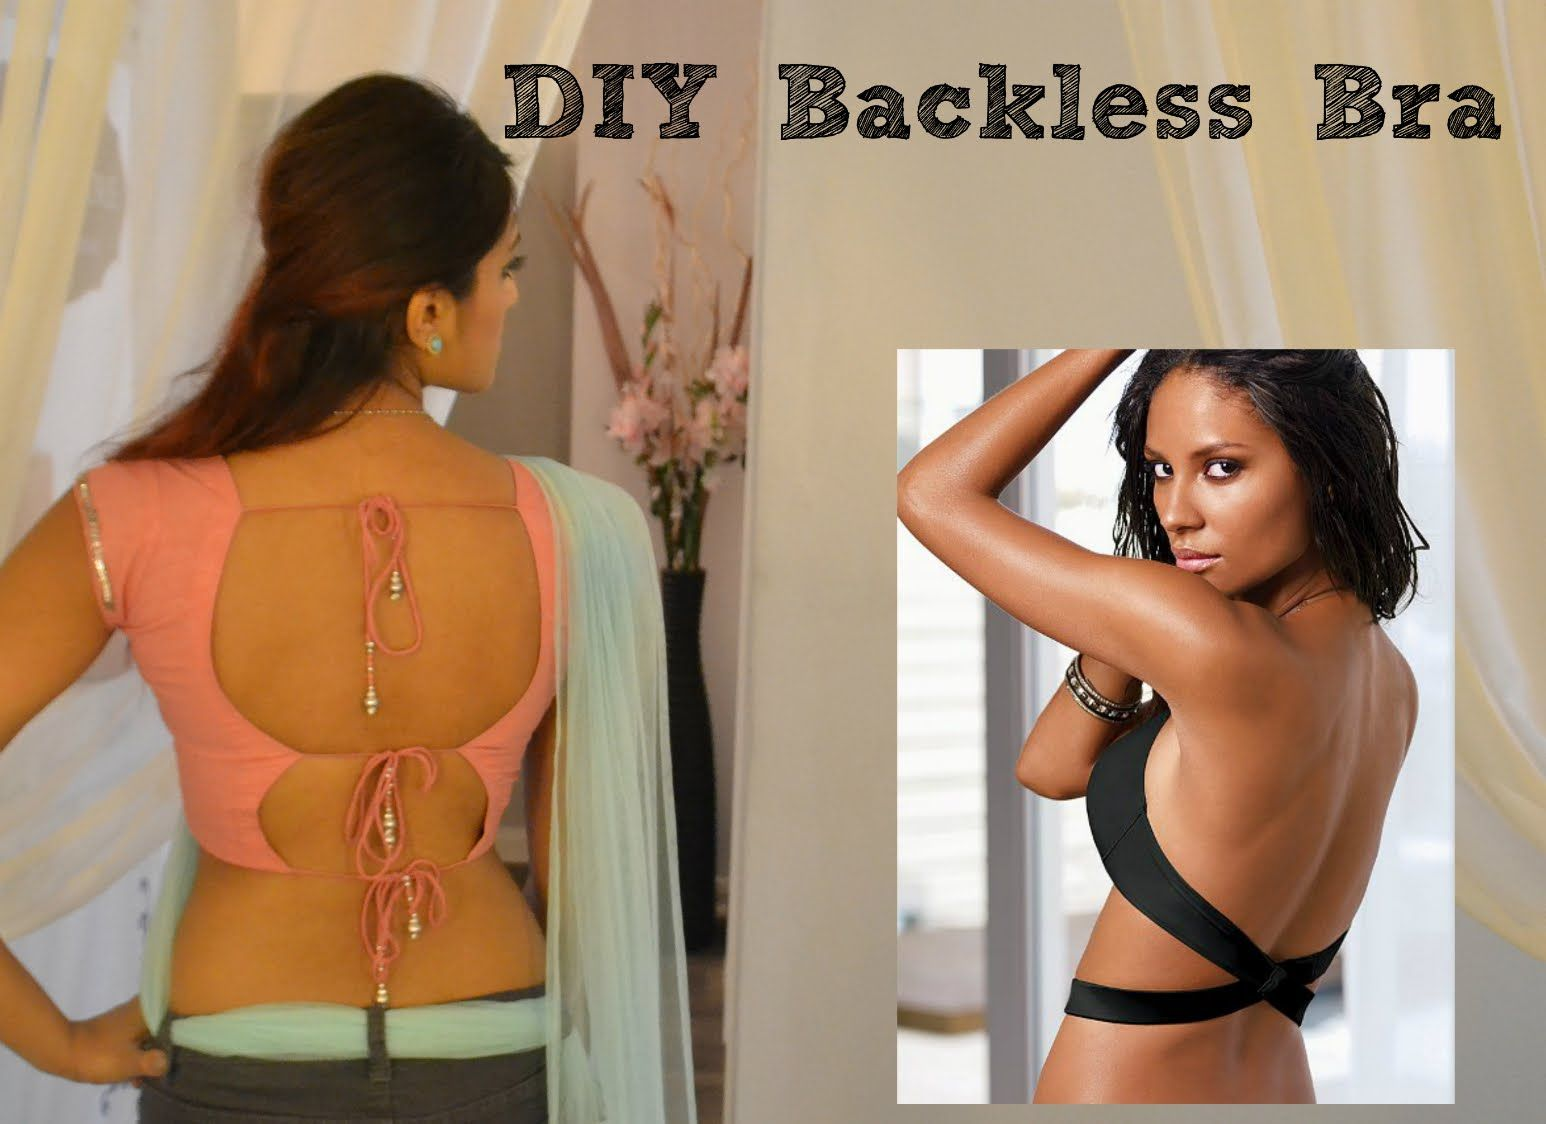 Diy Backless Bra Extension Low Back Strapless Dress Hack Sari Blouse Trick Tutorial How To Make Backless Bra Bras For Backless Dresses Diy Backless [ 1124 x 1546 Pixel ]